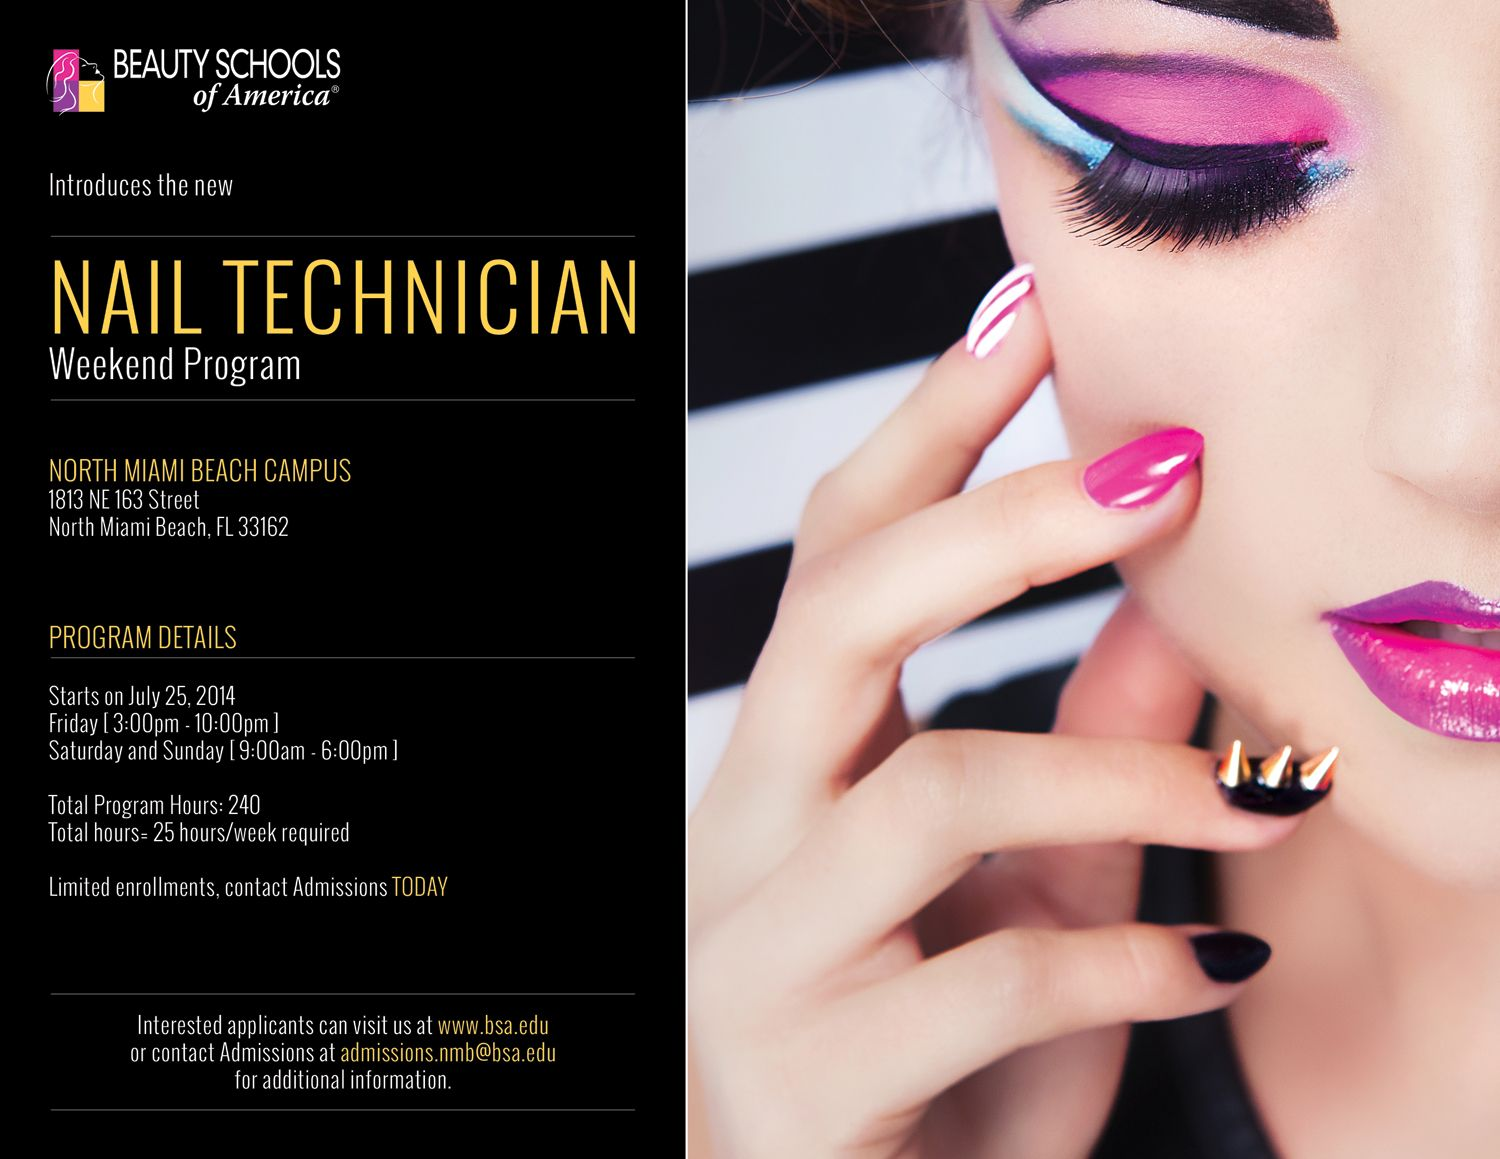 Nail Technician Program Friday to Sunday Weekend